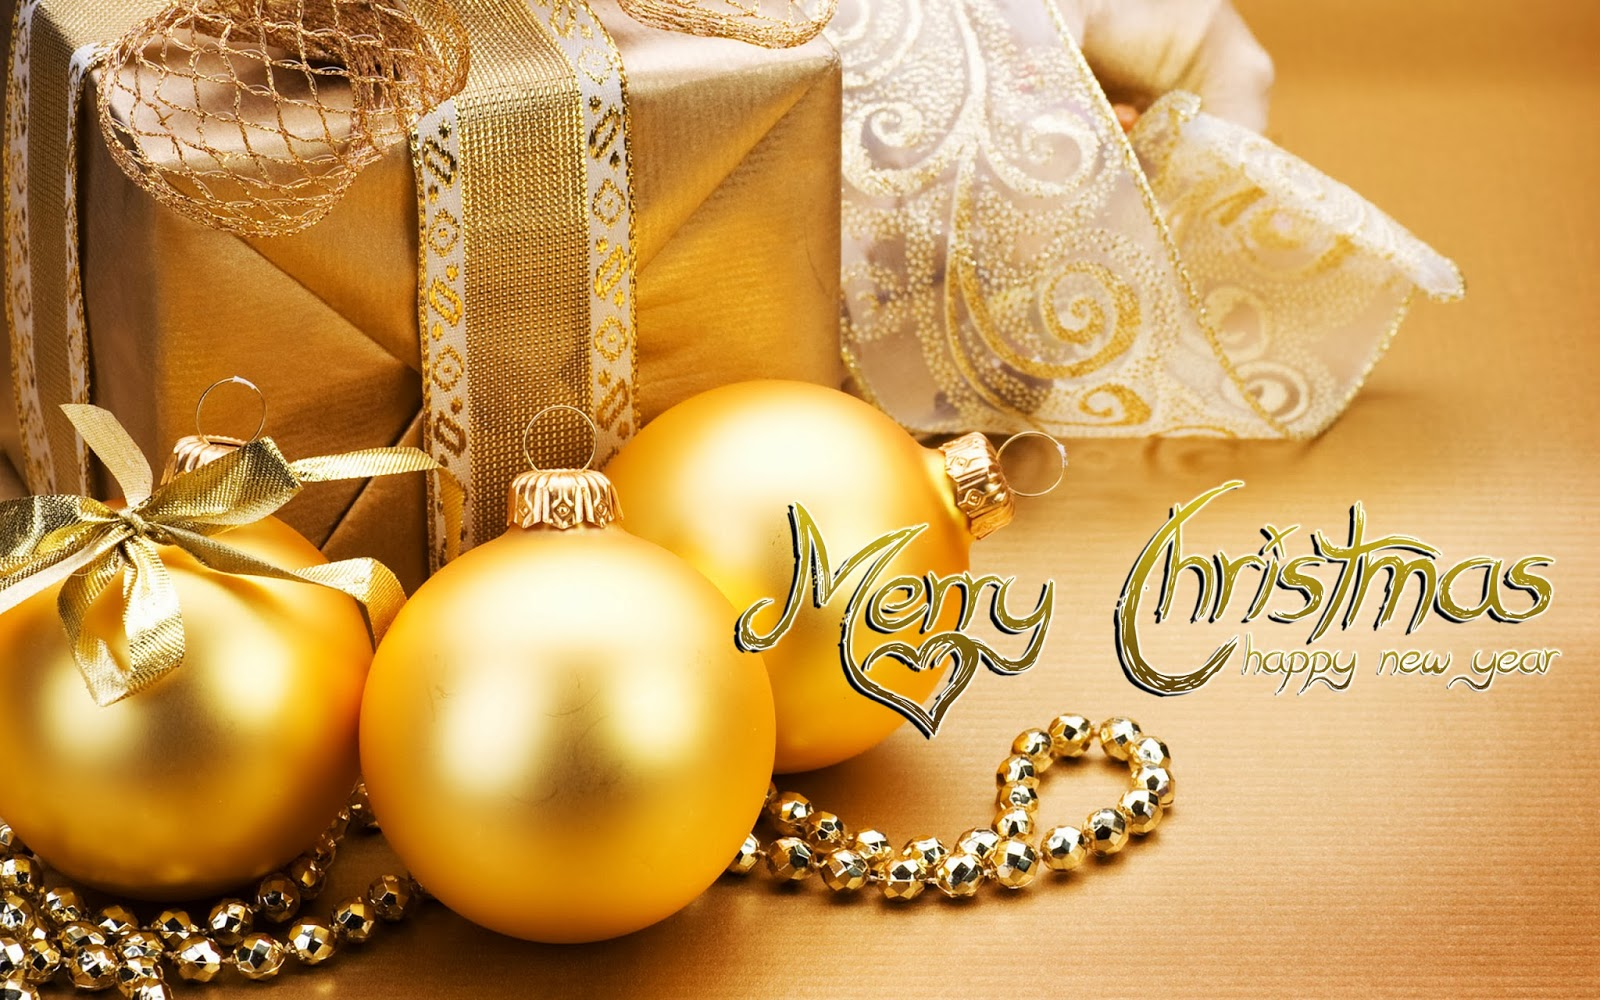 2014 Greetings Cards Wallpapers with Quotes   New Year Greetings Cards 1600x1000